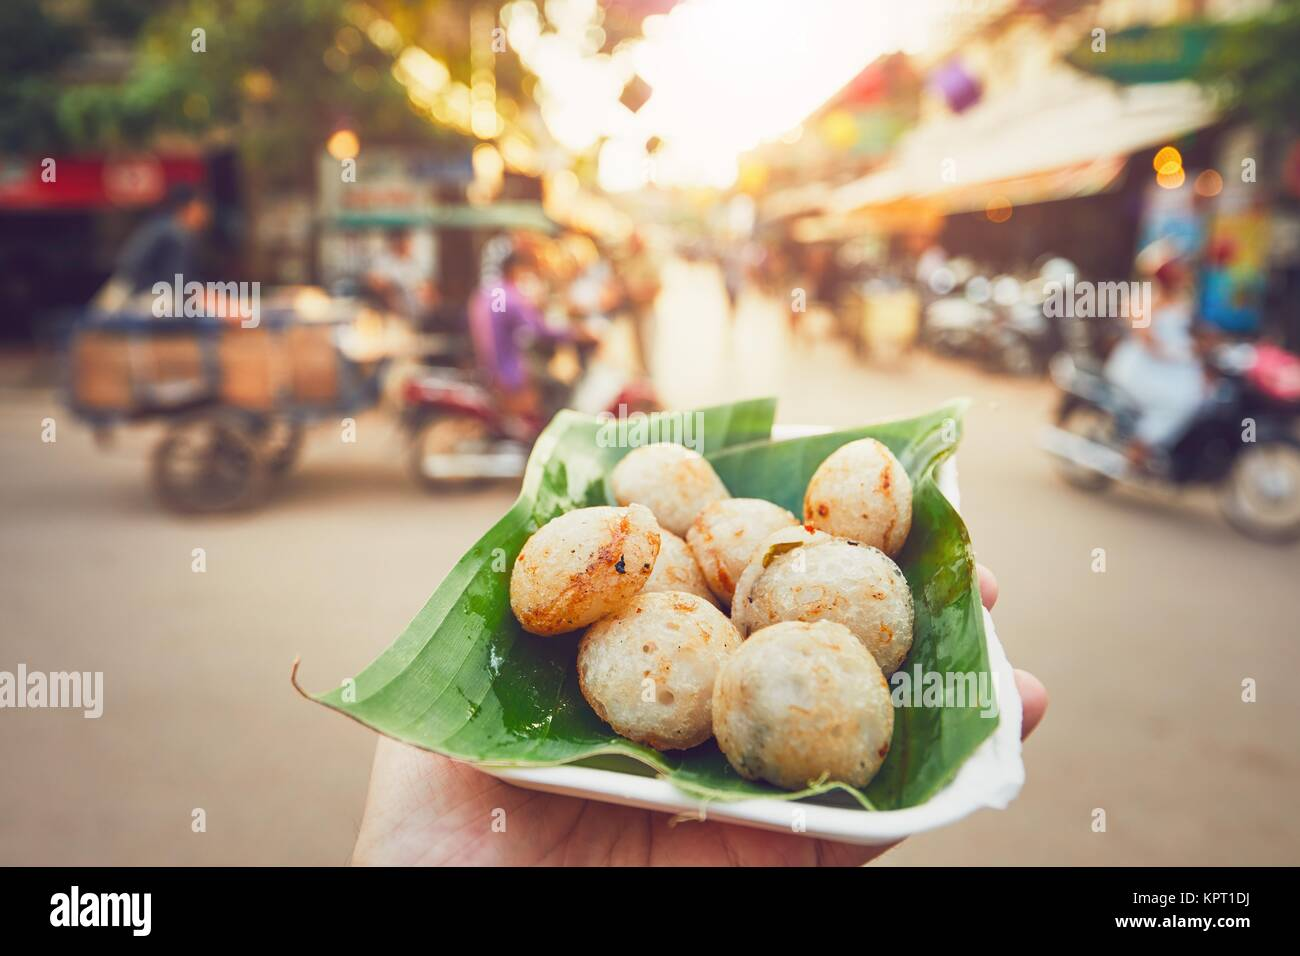 Hand of man holding bowl with sweet coconut food. Busy street full of restaurants, bars and shops - Siem Reap, Cambodia - Stock Image